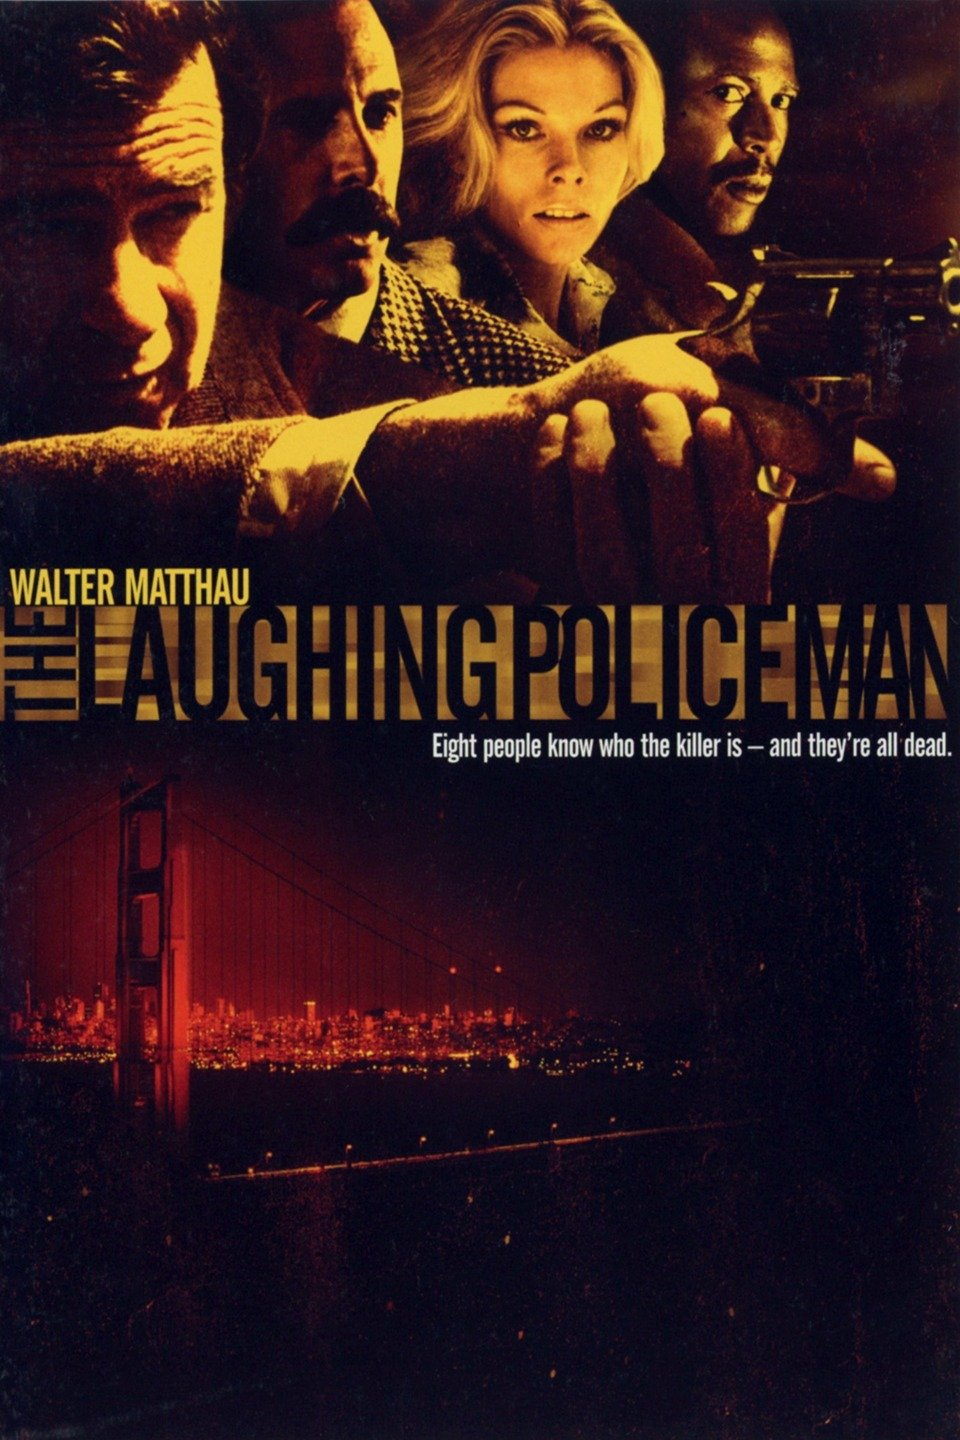 — THE LAUGHING POLICEMAN   When a gunman opens fire on a crowded city bus in San Francisco, Detective Dave Evans (Anthony Costello) is killed, along with the man he'd been following in relation to a murder. Evans' partner, Sgt. Jake Martin (Walter Matthau), becomes obsessed with solving the case -- but all the witnesses are dead. Martin enlists a new partner, Leo Larsen (Bruce Dern), to help with the frustrating case, and when the pair is told to drop the investigation, they disobey the orders and close in on the killer.